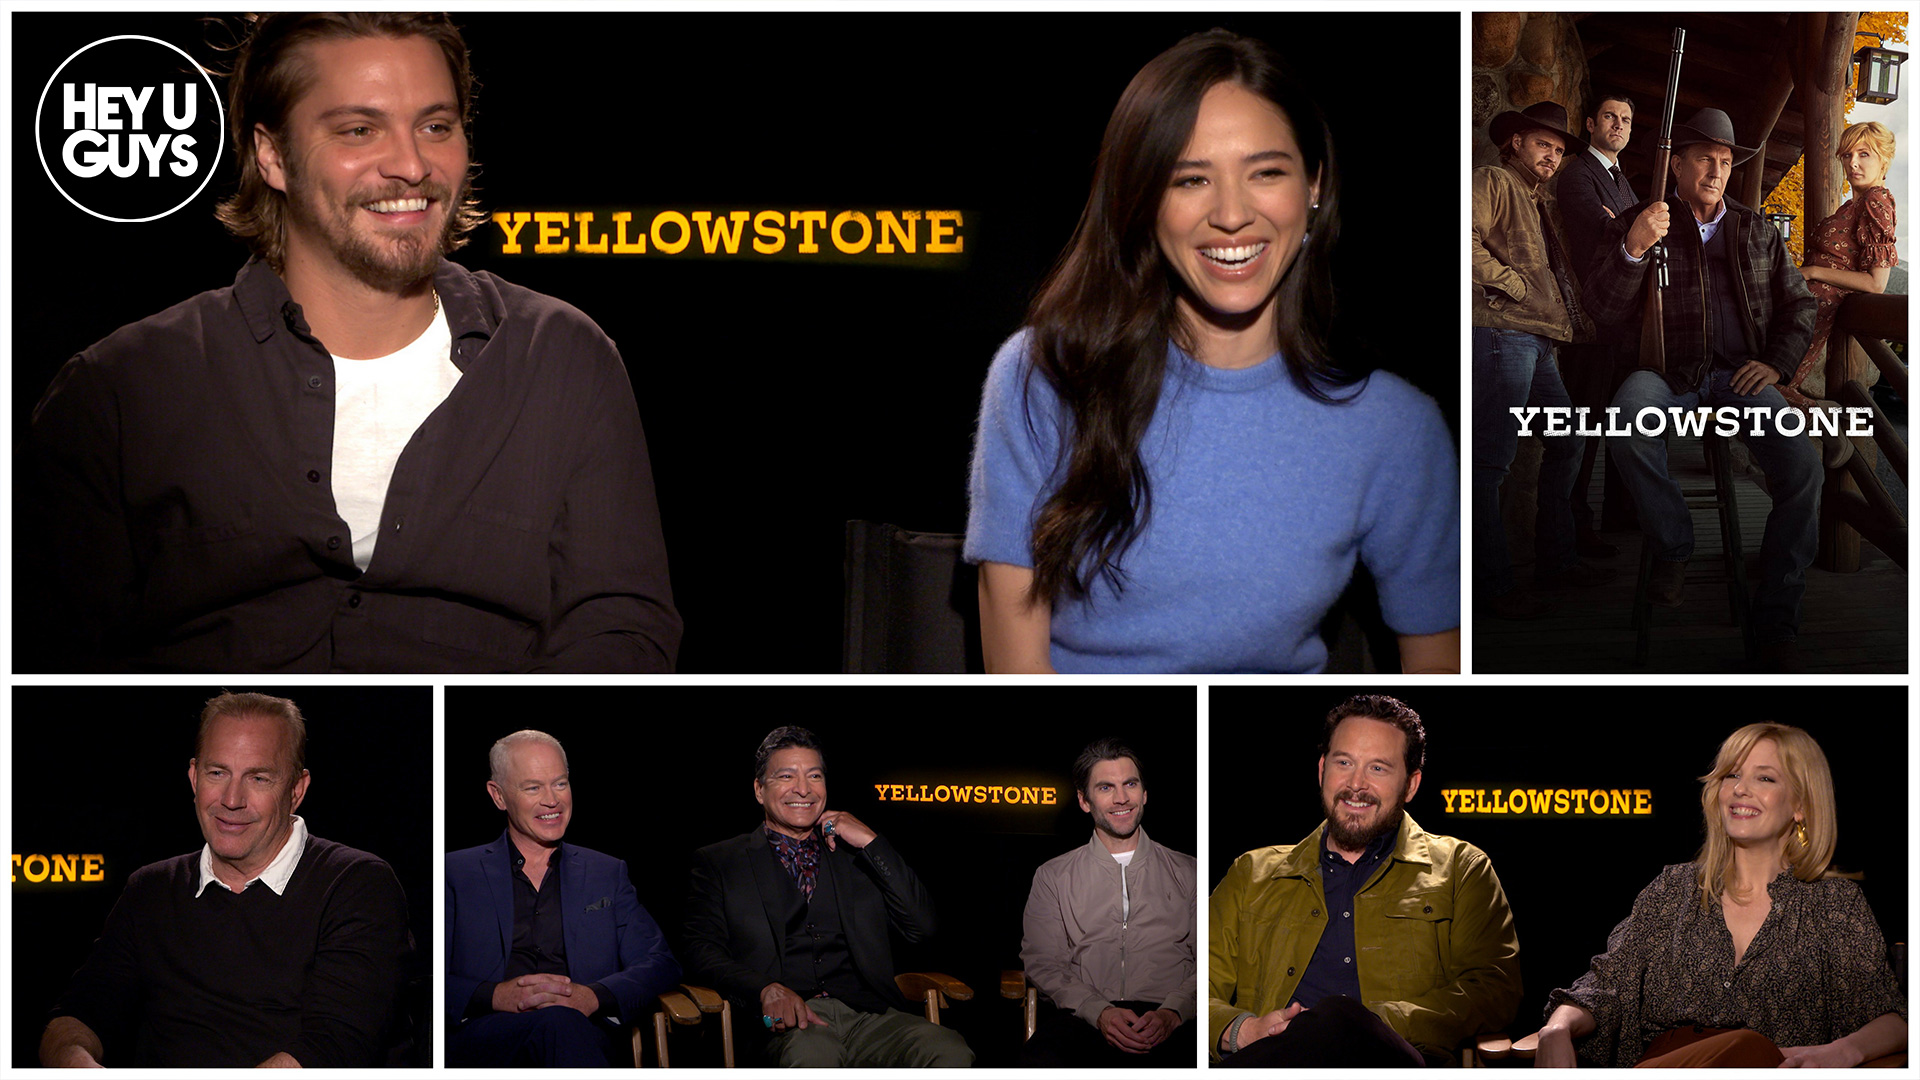 yellowstone season 2 cast interviews